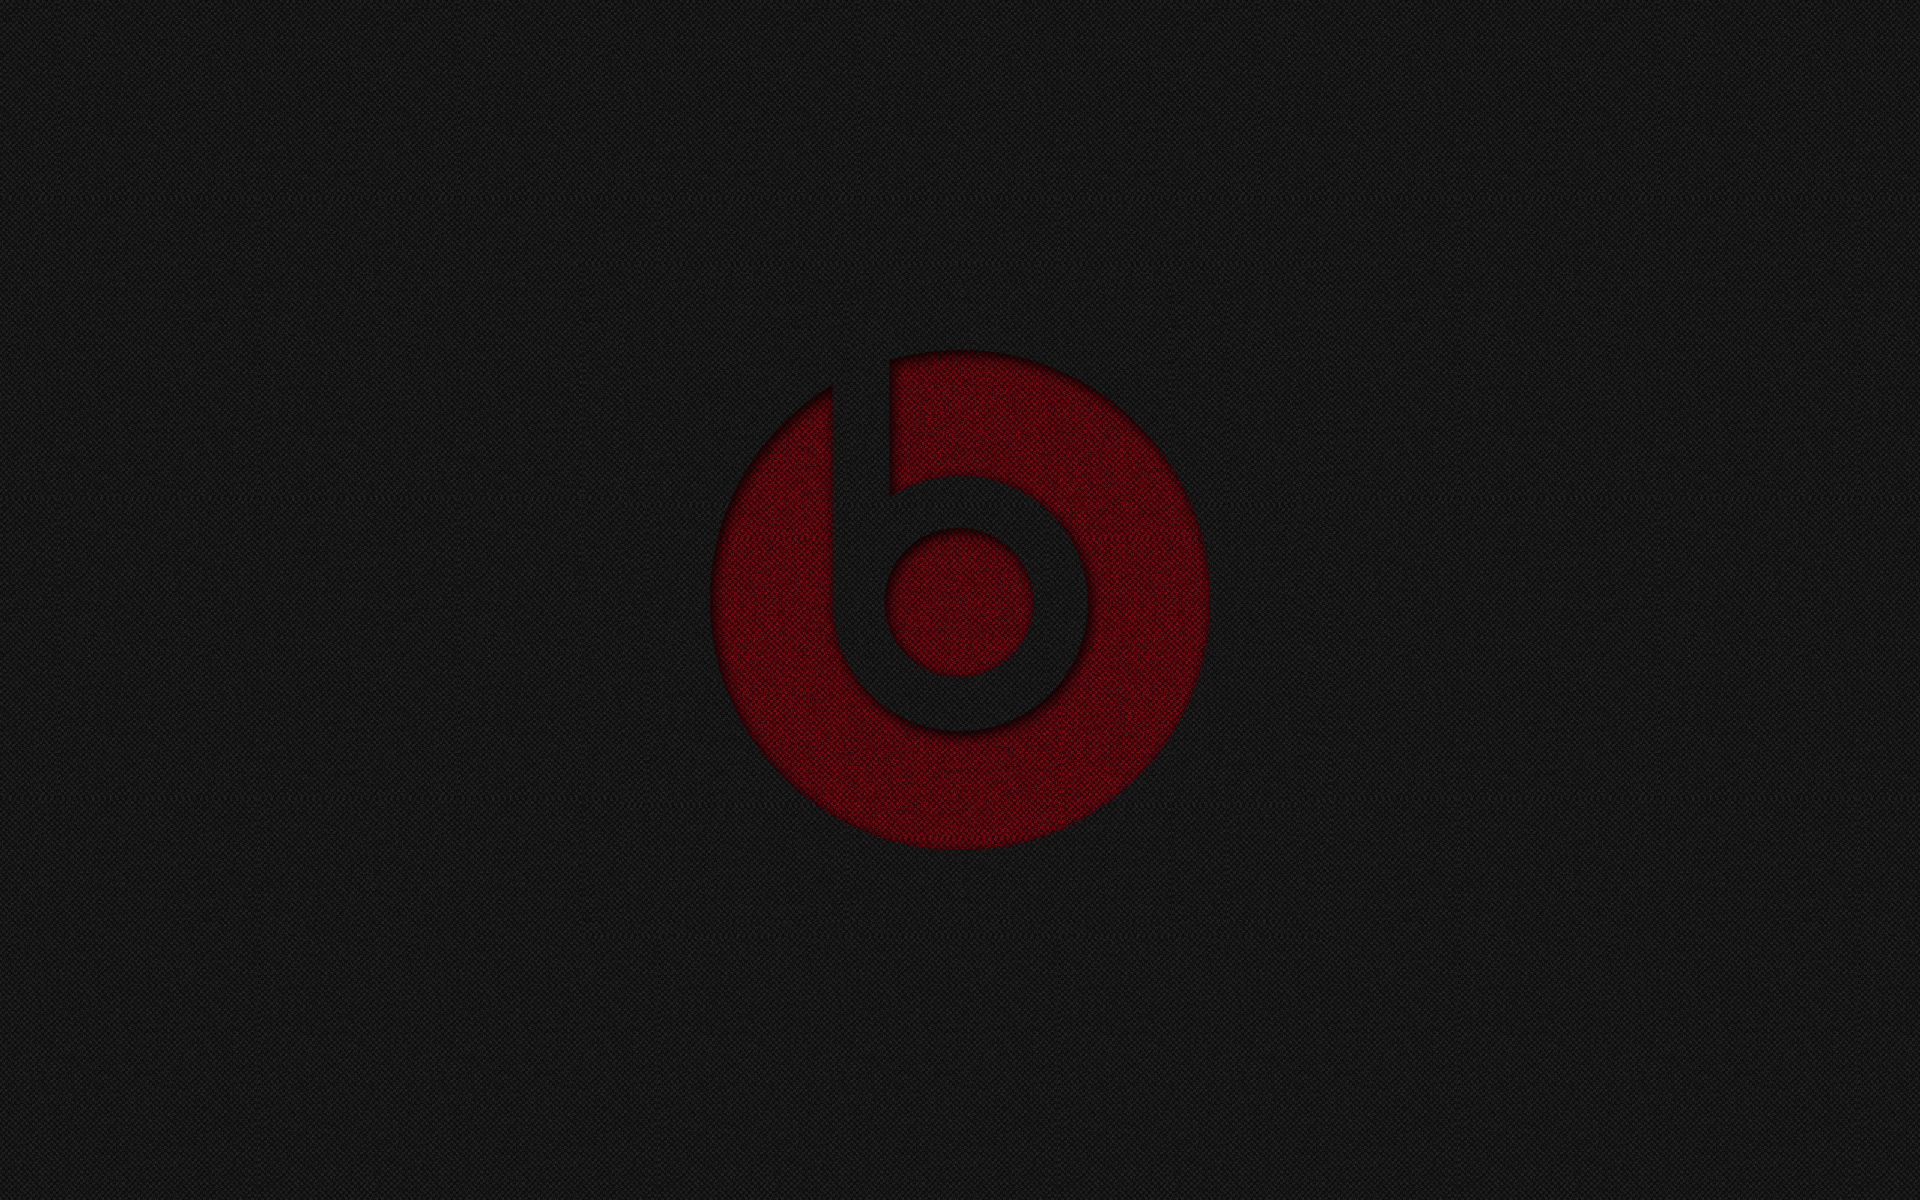 Beats By Dr Dre Denim Wallpaper Halacoglu